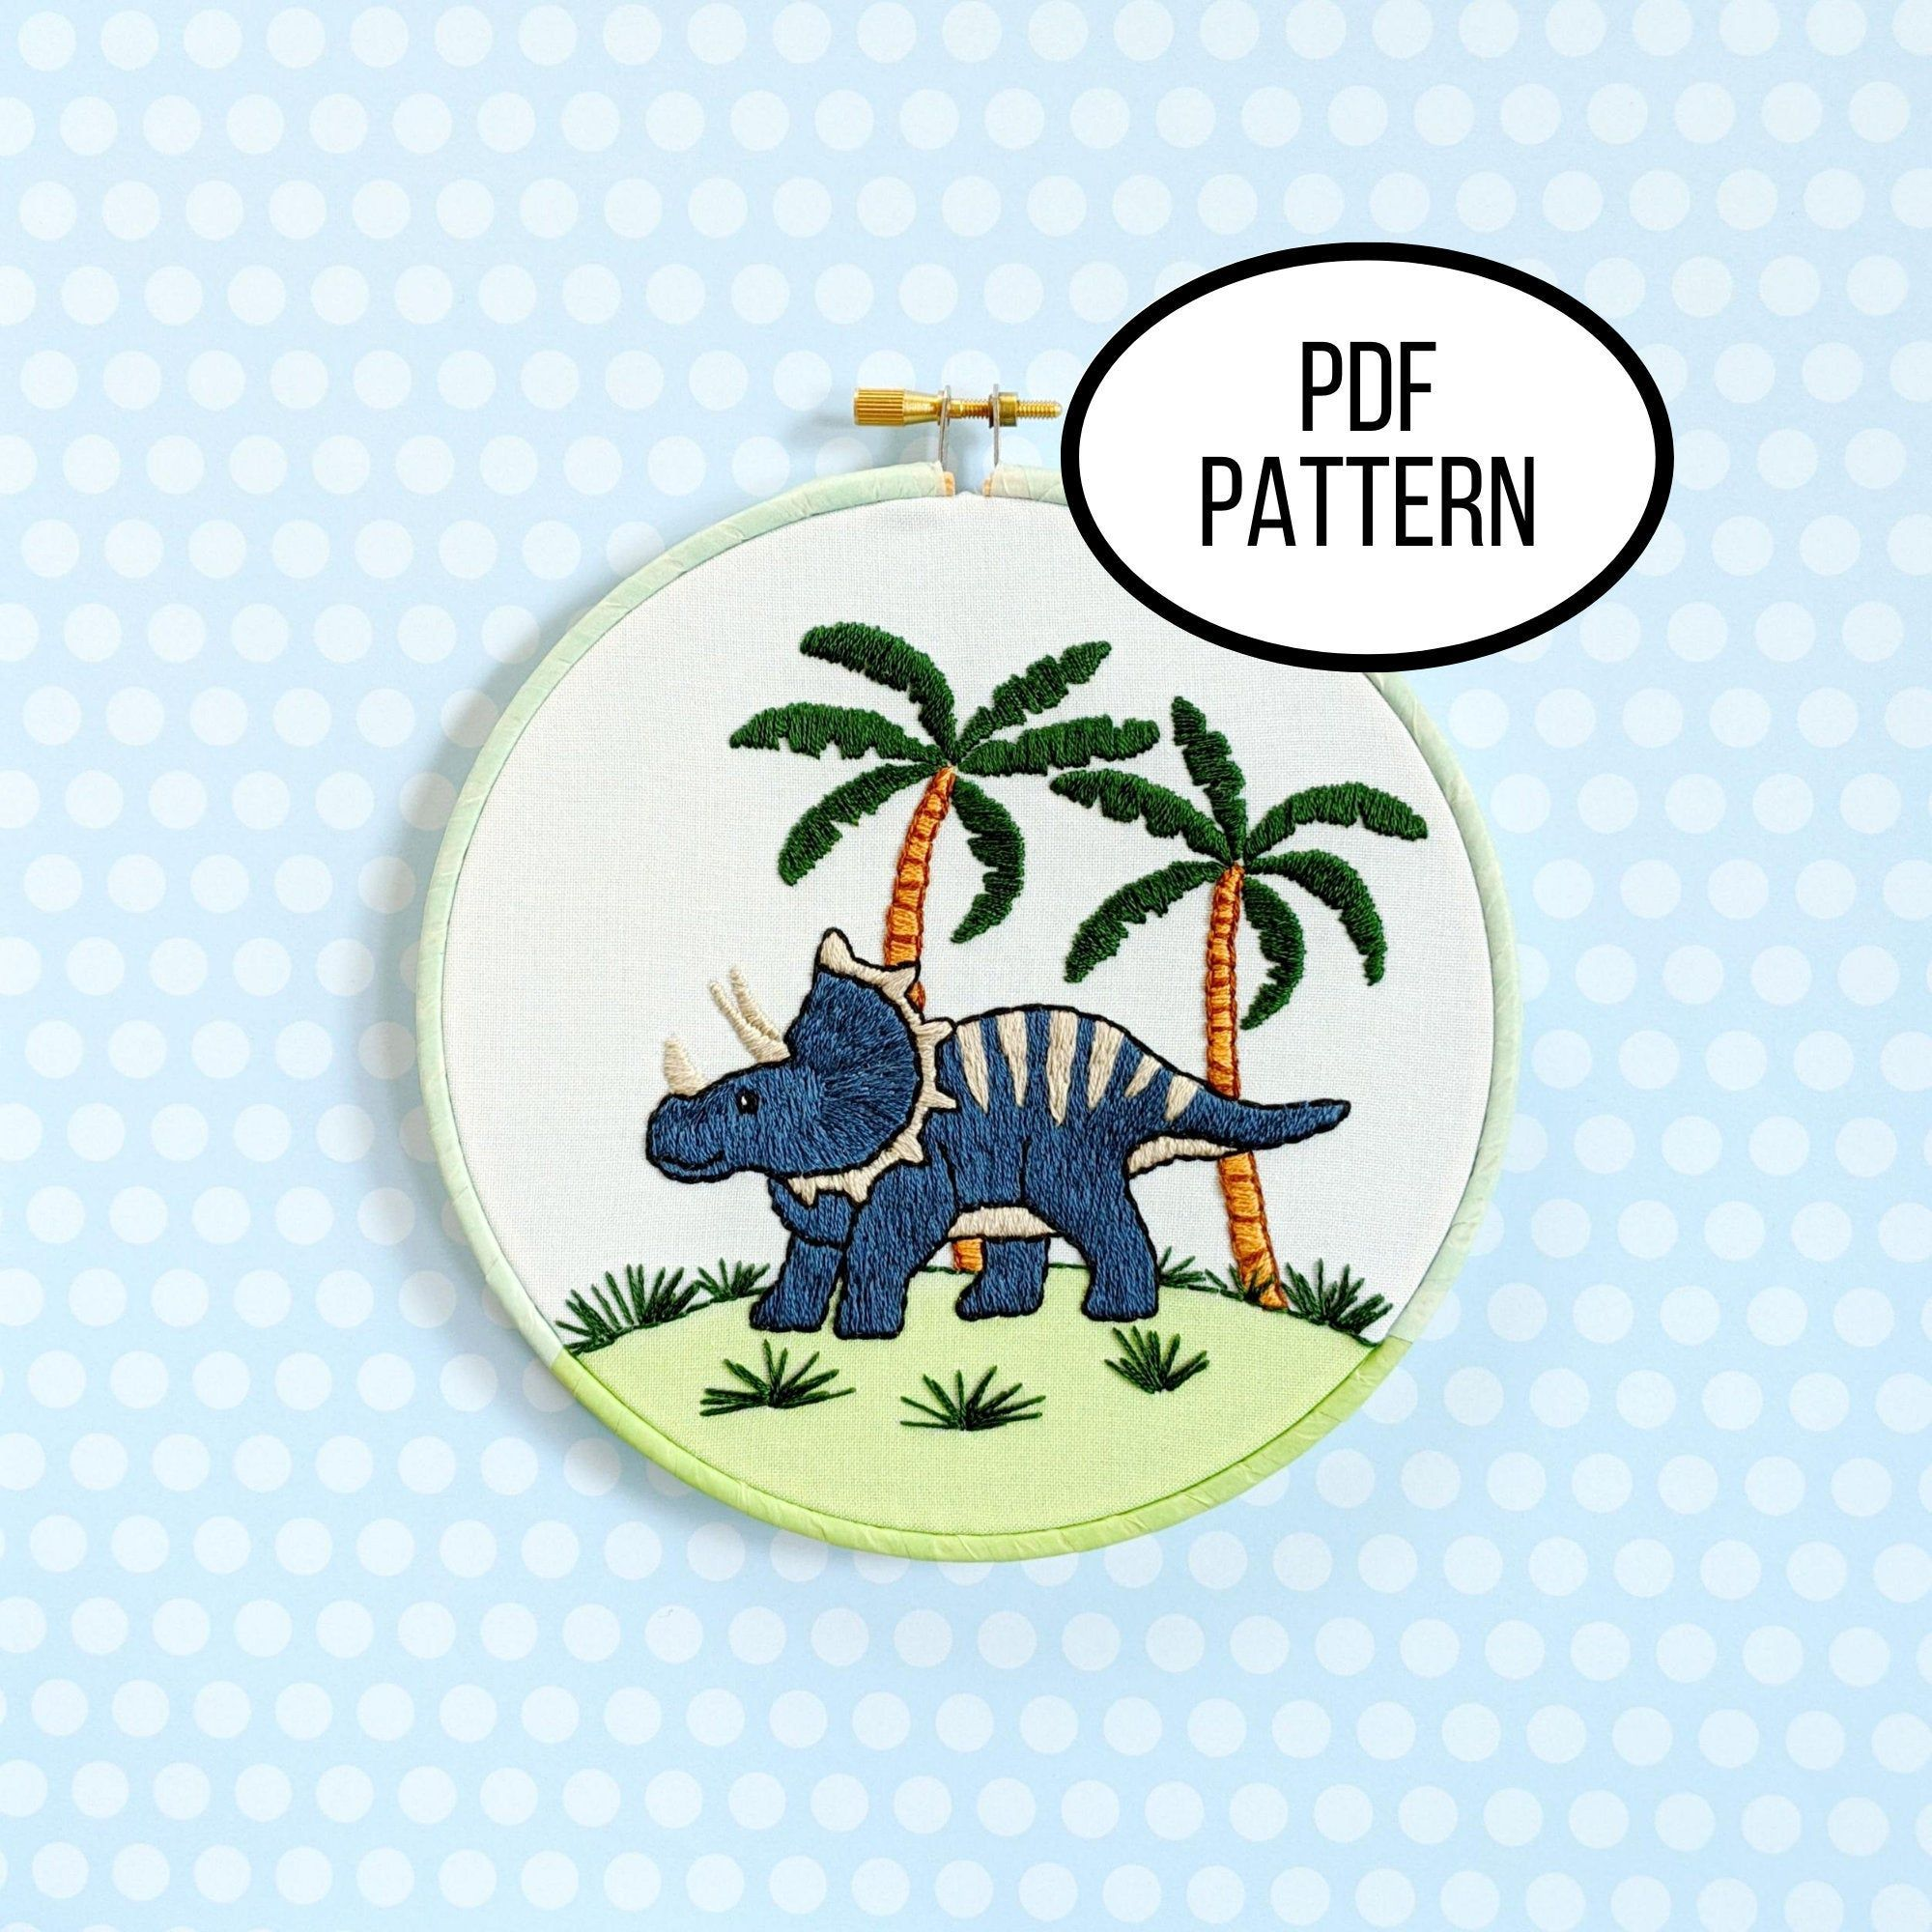 Hand Embroidery Pdf Pattern Triceratops Dinosaur Design Etsy In 2021 Printing On Fabric Hand Embroidery Diy Embroidery For Beginners